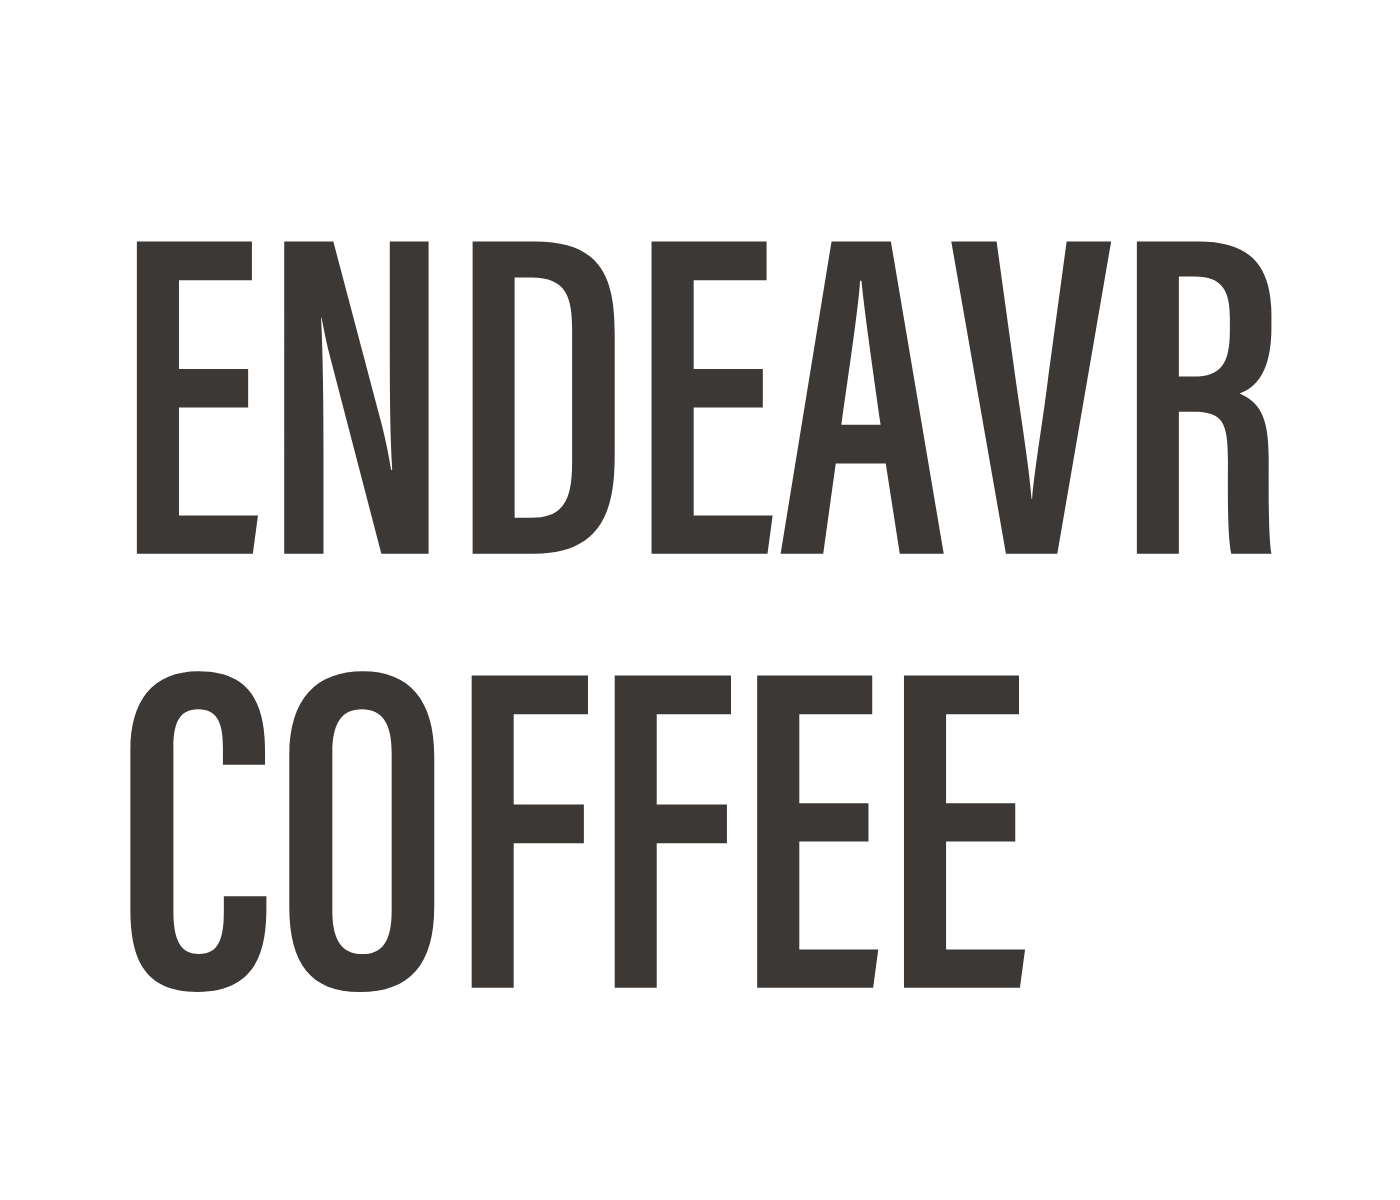 Endeavr Coffee